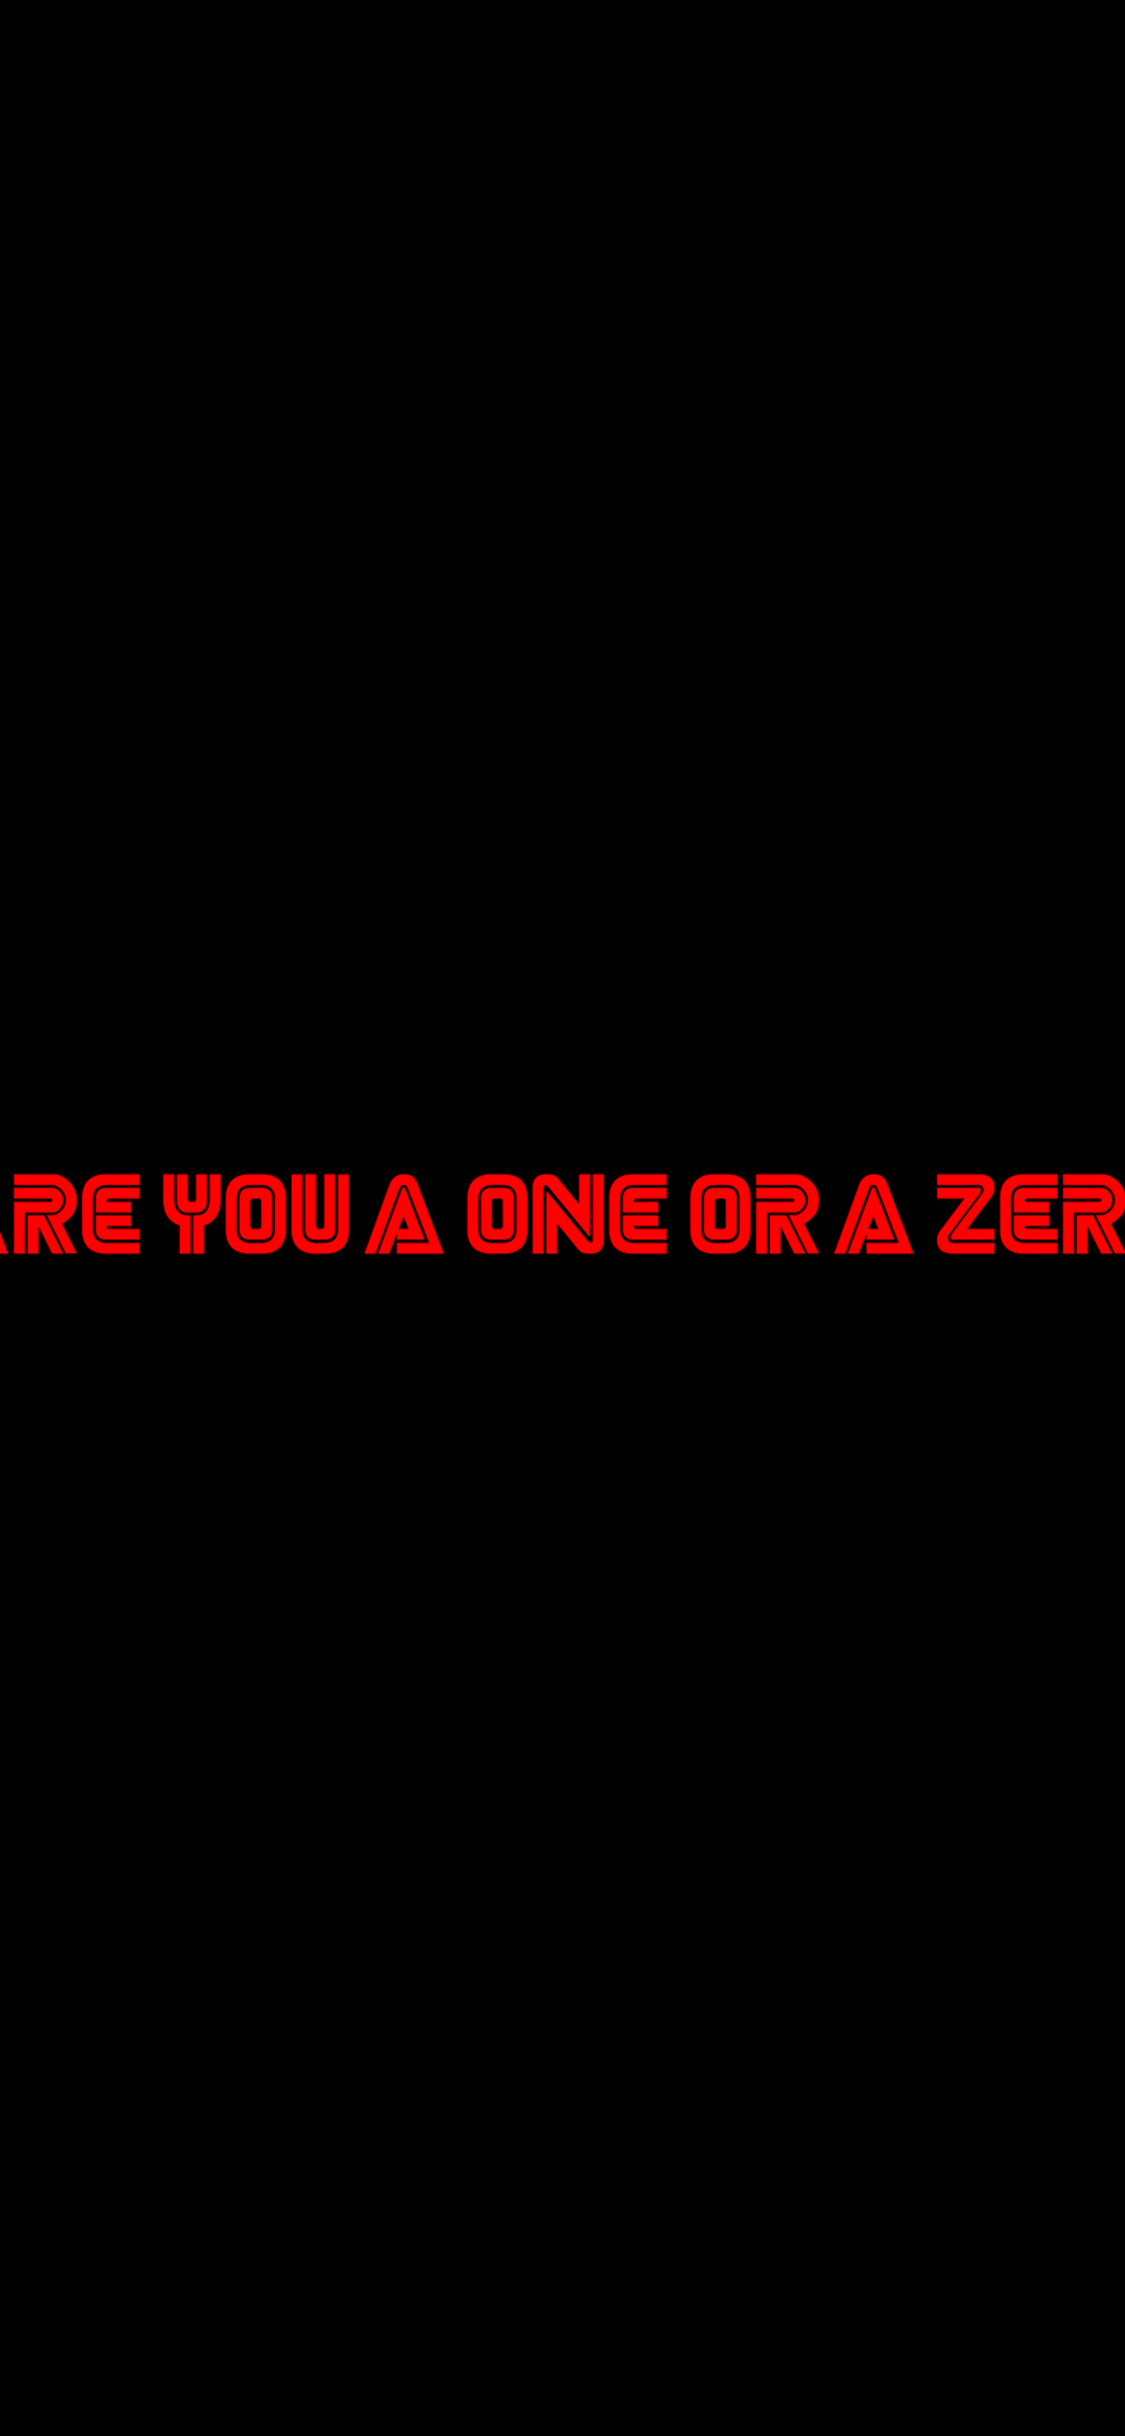 1125x2436 Are You A One Or A Zero Mr Robot Typography 4k Iphone Xs Iphone 10 Iphone X Hd 4k Wallpapers Images Backgrounds Photos And Pictures